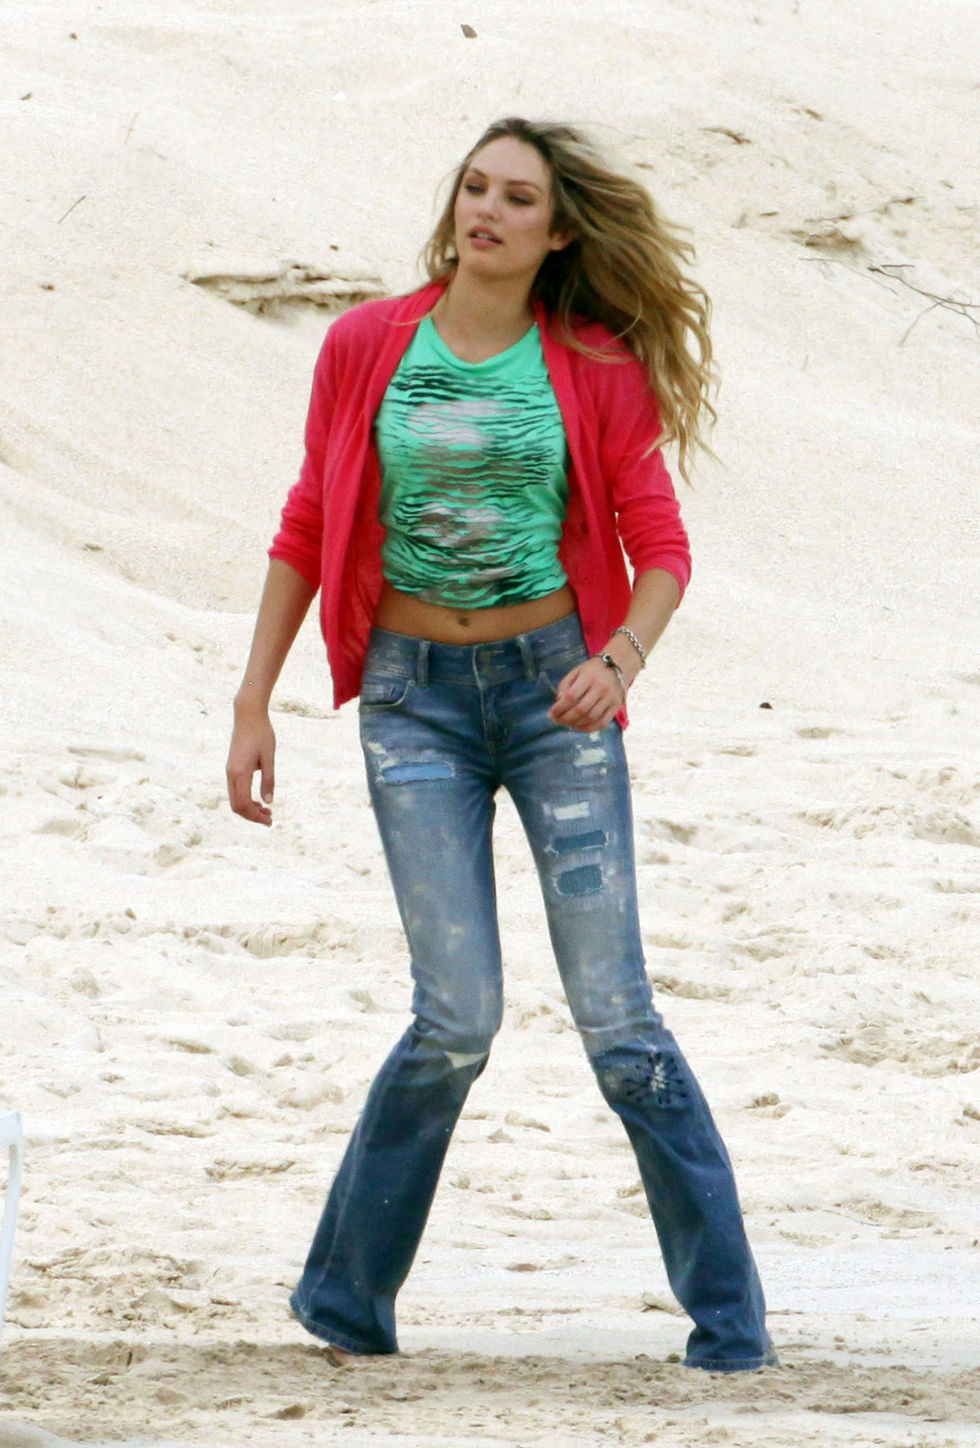 doutzen-kroes-photoshoot-candids-at-the-beach-in-st-barths-01